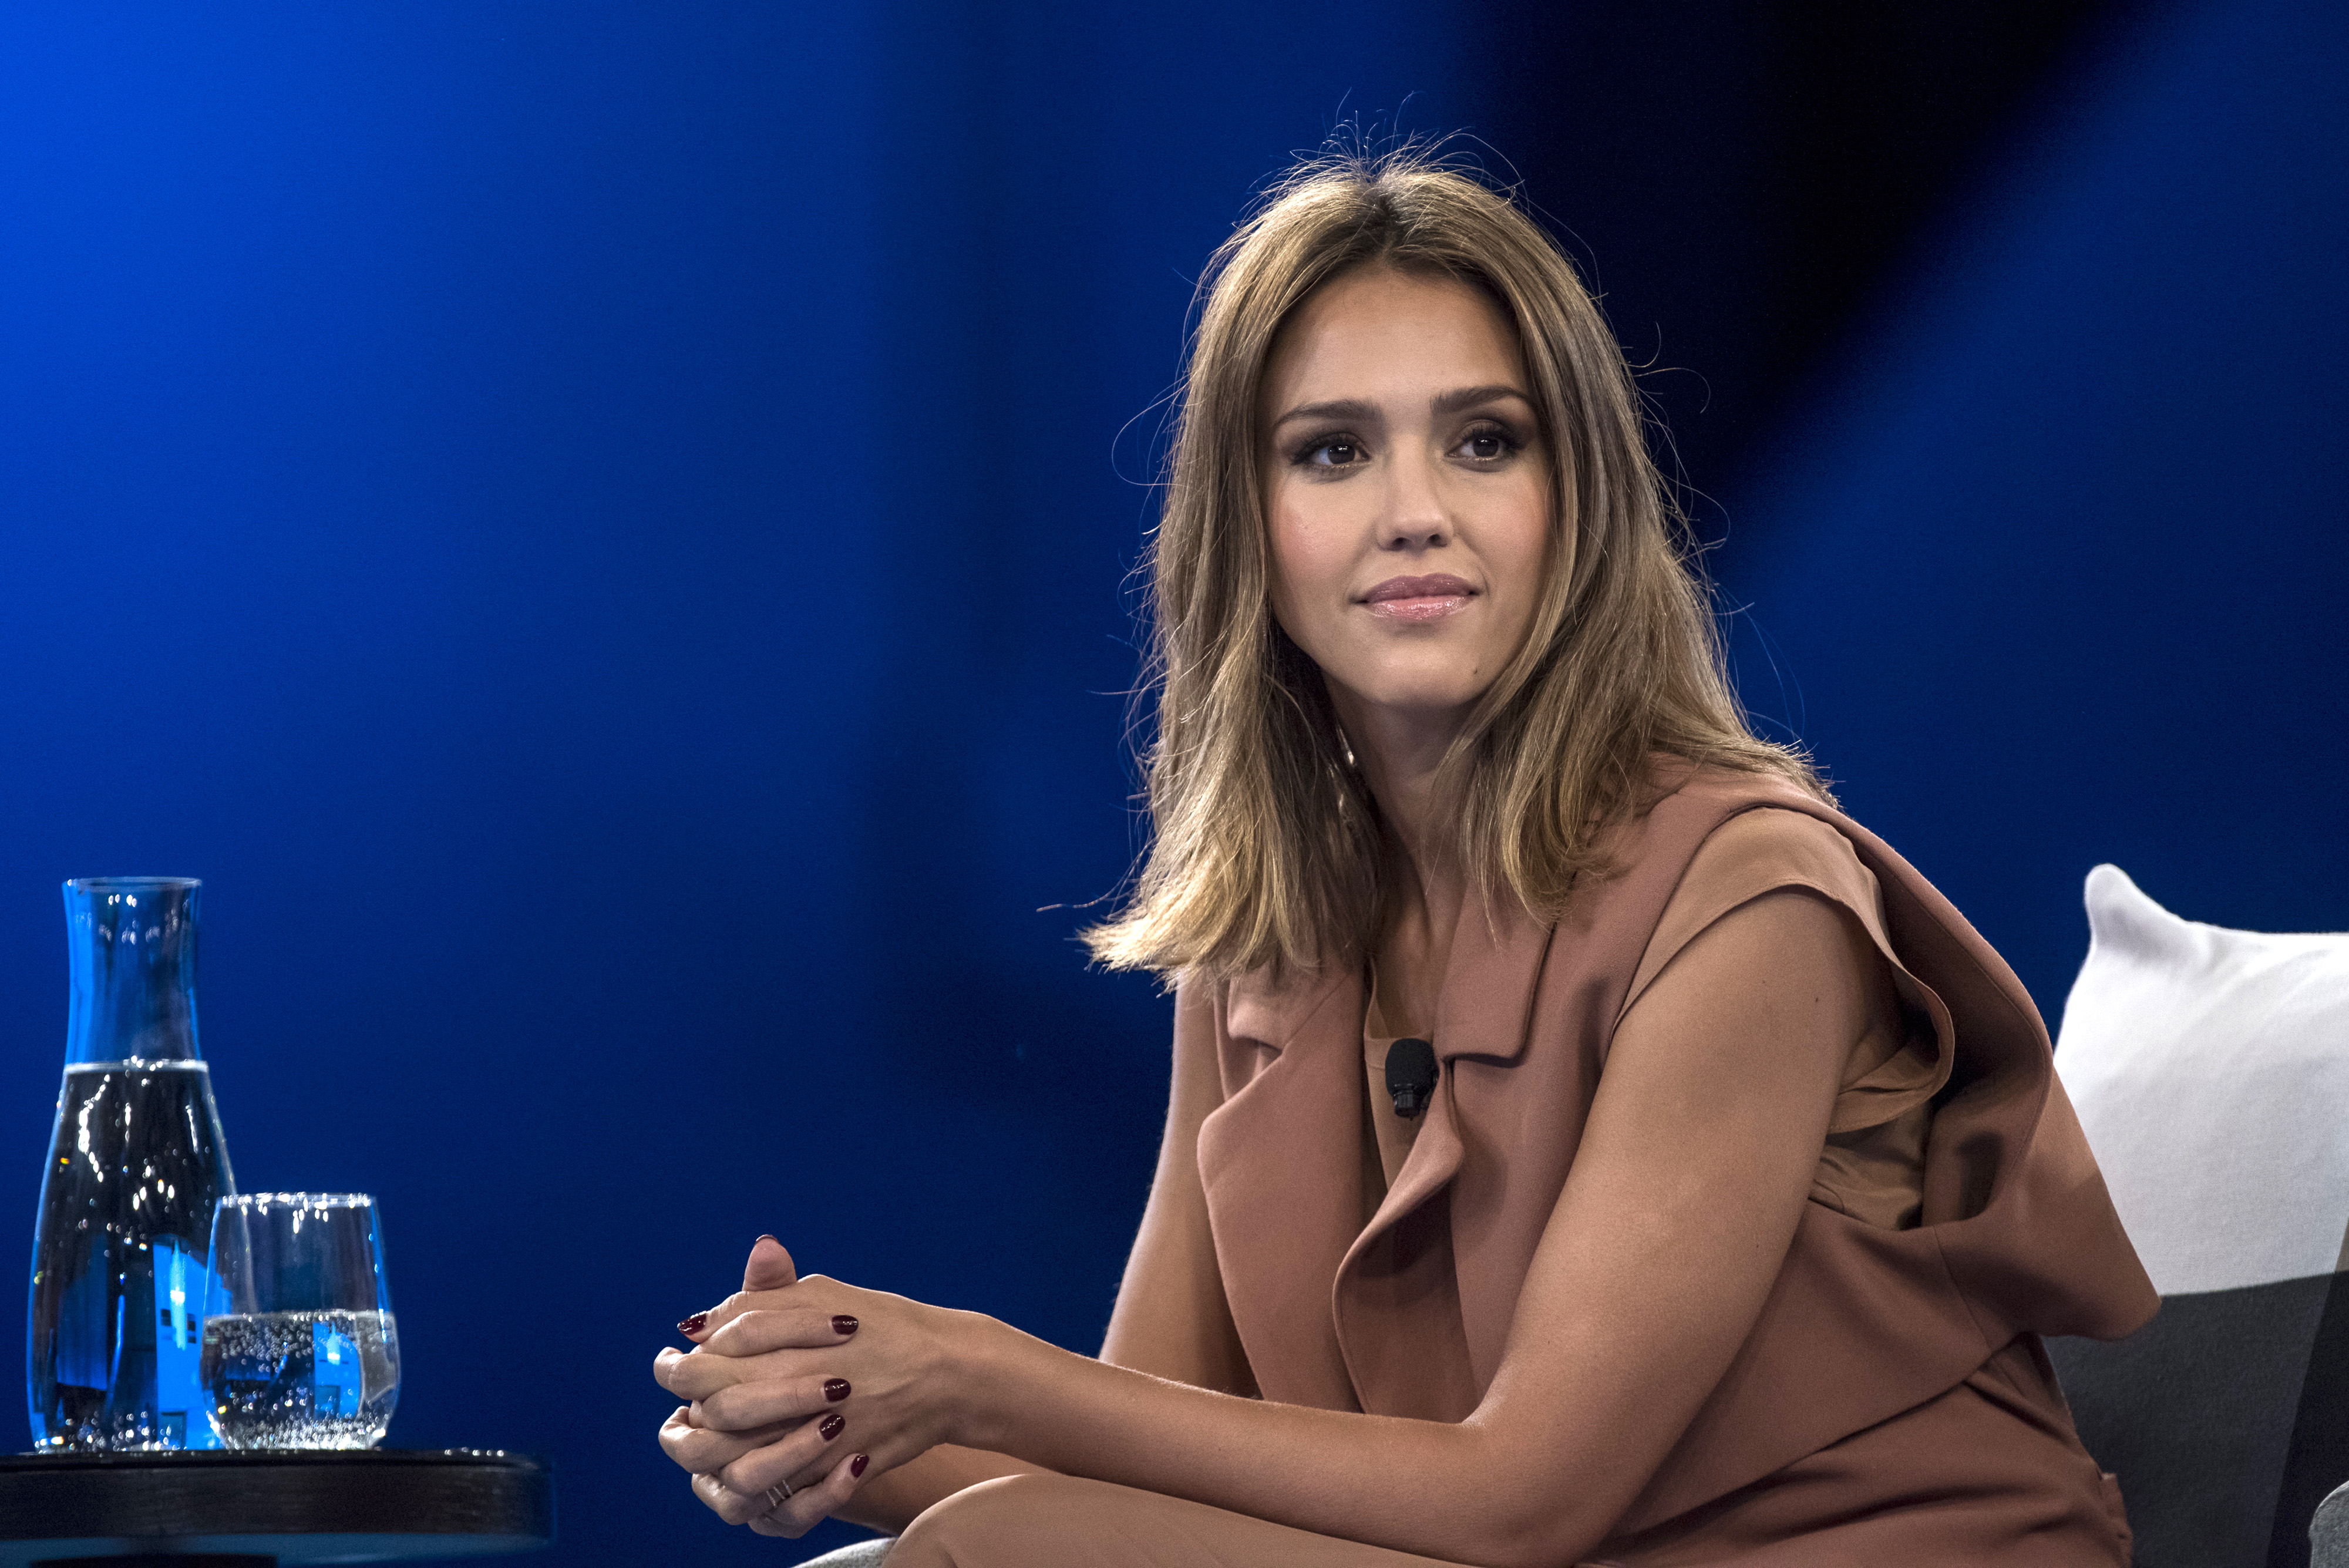 Actress Jessica Alba, co-founder of The Honest Co., listens to a presentation during the DreamForce Conference in San Francisco, California, U.S., on Thursday, Sept. 17, 2015. Salesforce.com Inc. aims to cut the time its customers spend plugging data into its systems by weaving machine-learning technology from acquisition RelateIQ into its software for managing sales accounts. Photographer: David Paul Morris/Bloomberg via Getty Images